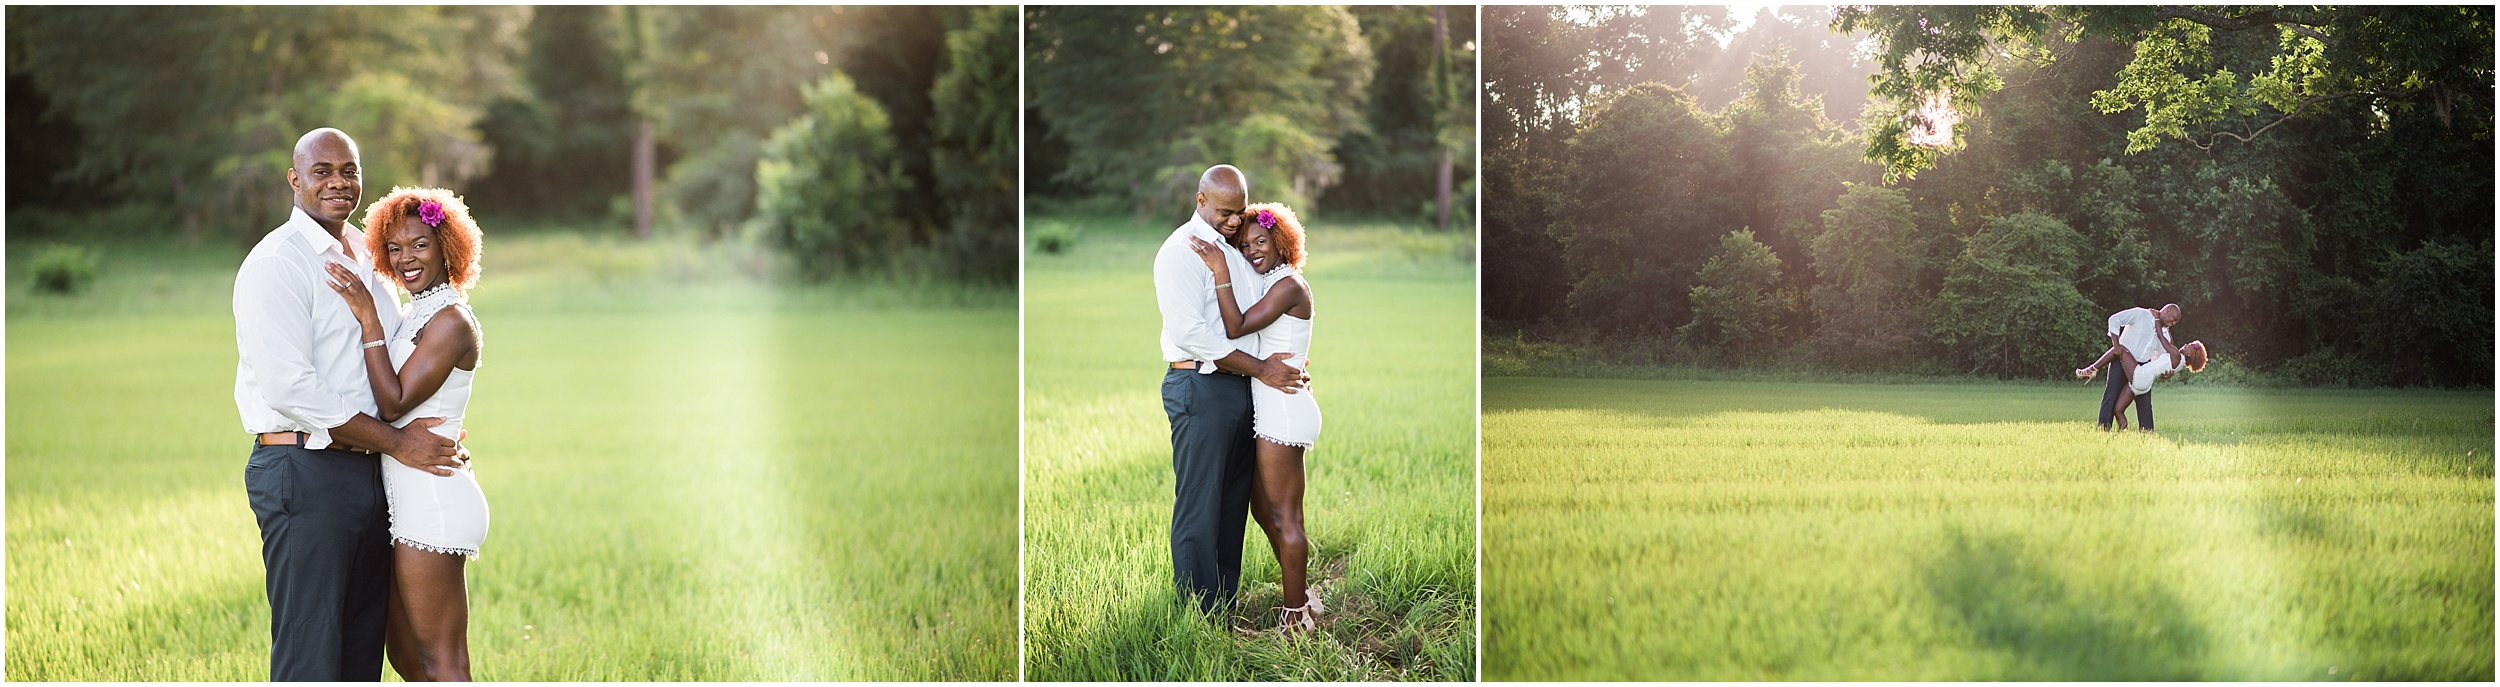 Kacy & Rolanda Vow Renewal at J.R Alford Greenway, Tallahassee FL_0002.jpg